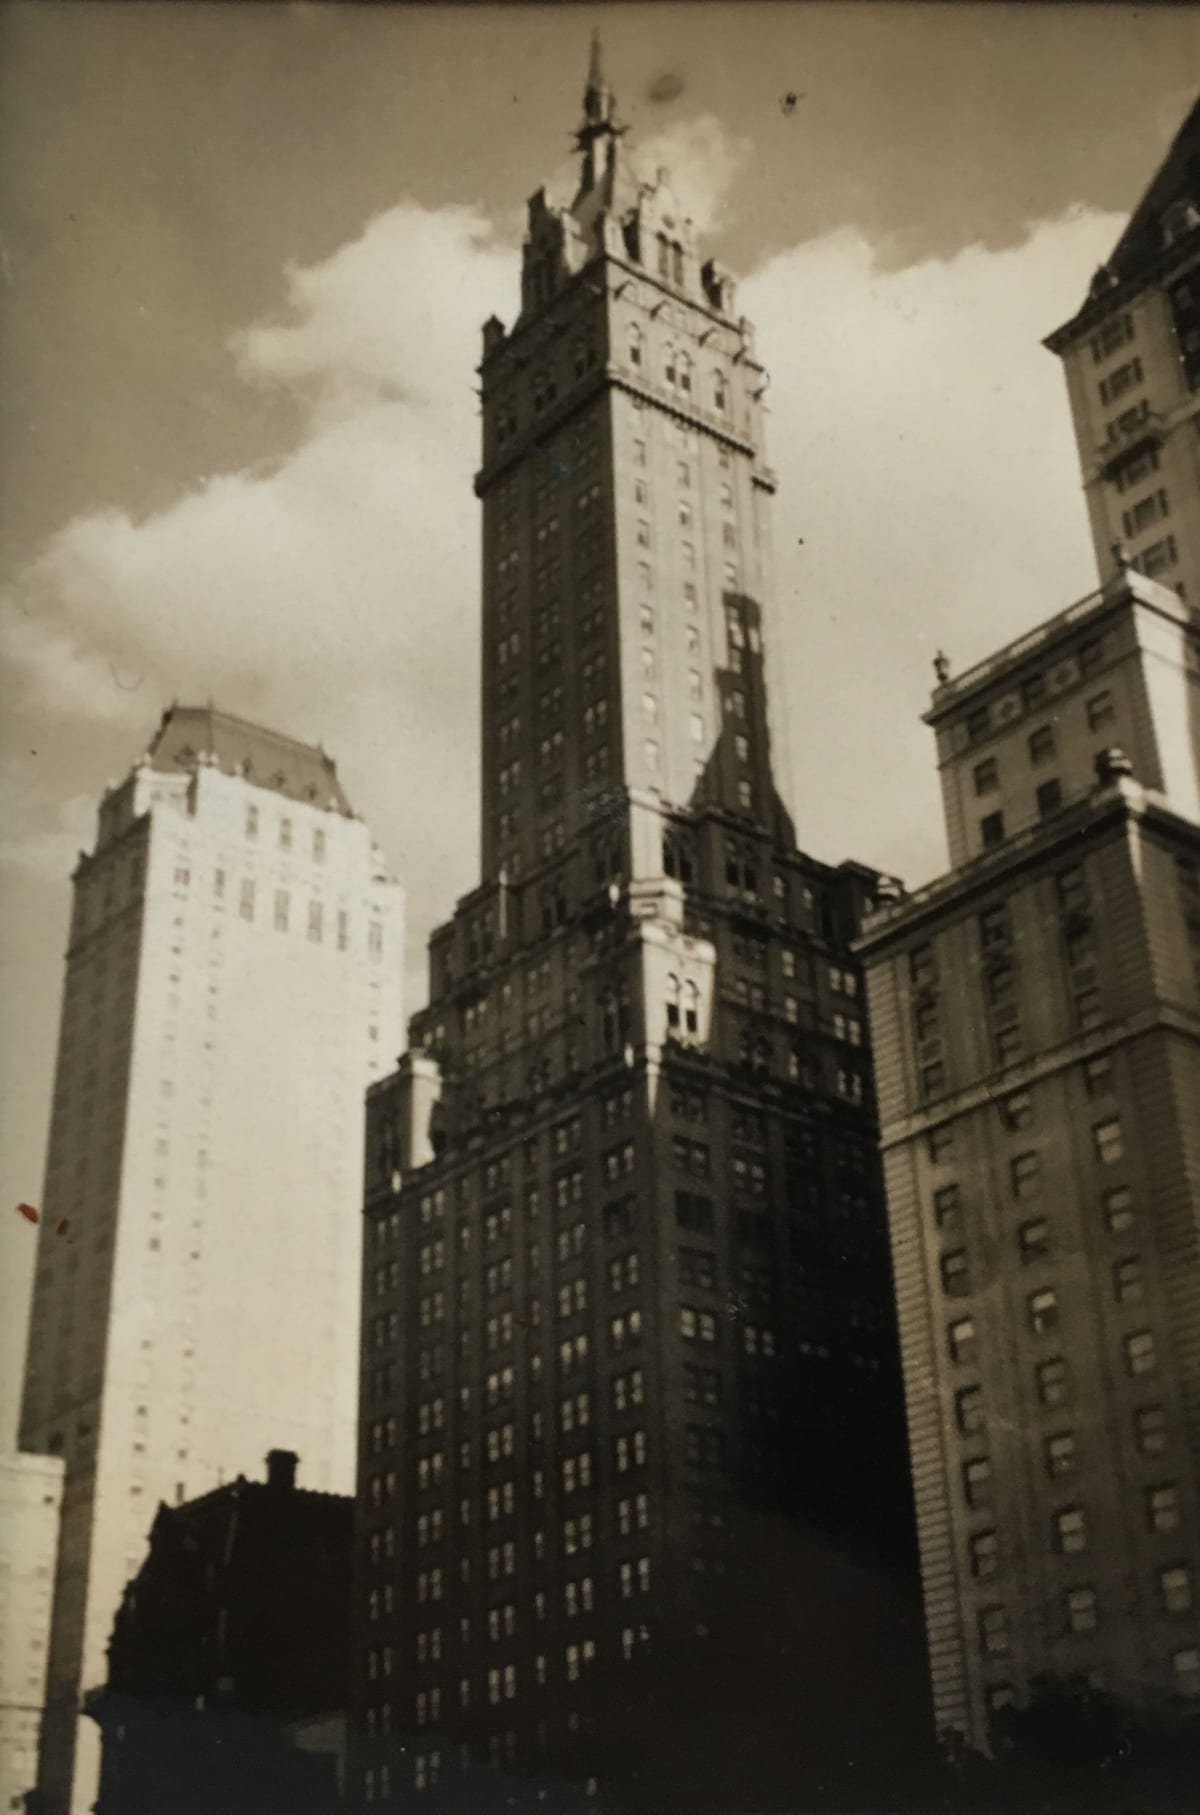 Fred Zinnemann Hotel Pierre, Sherry Netherland, Savoy Plaza, October 1931 Gelatin silver print 3 1/4 x 2 1/4 inches; Signed, titled & dated in pencil on verso